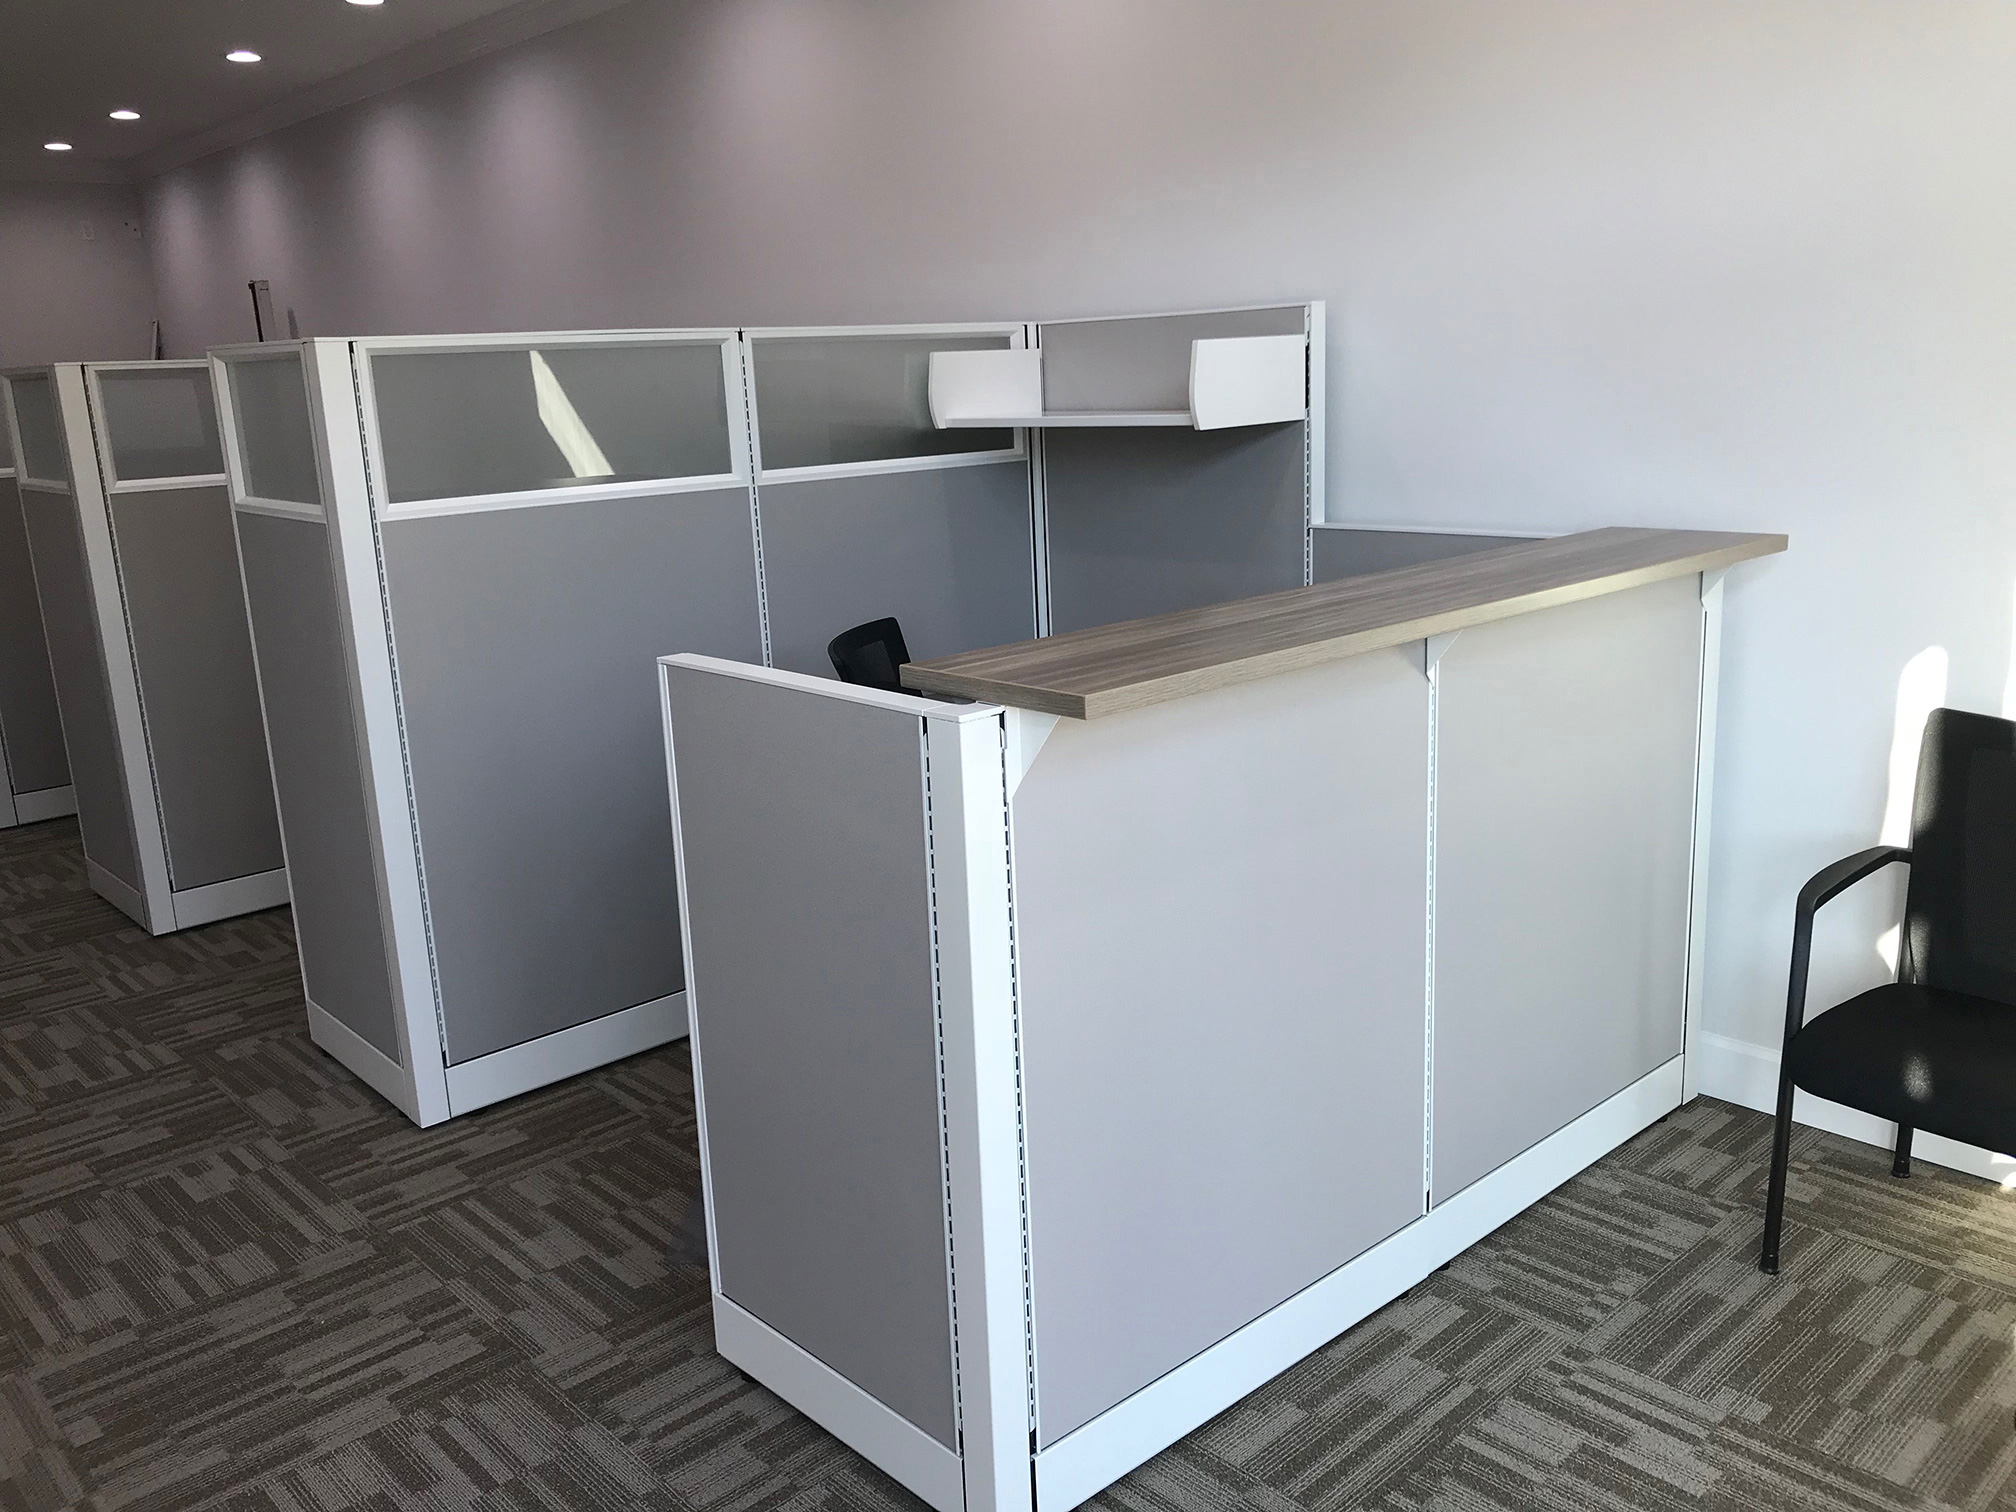 office-cubicles-for-sale-in-plant-city-florida-3.jpg